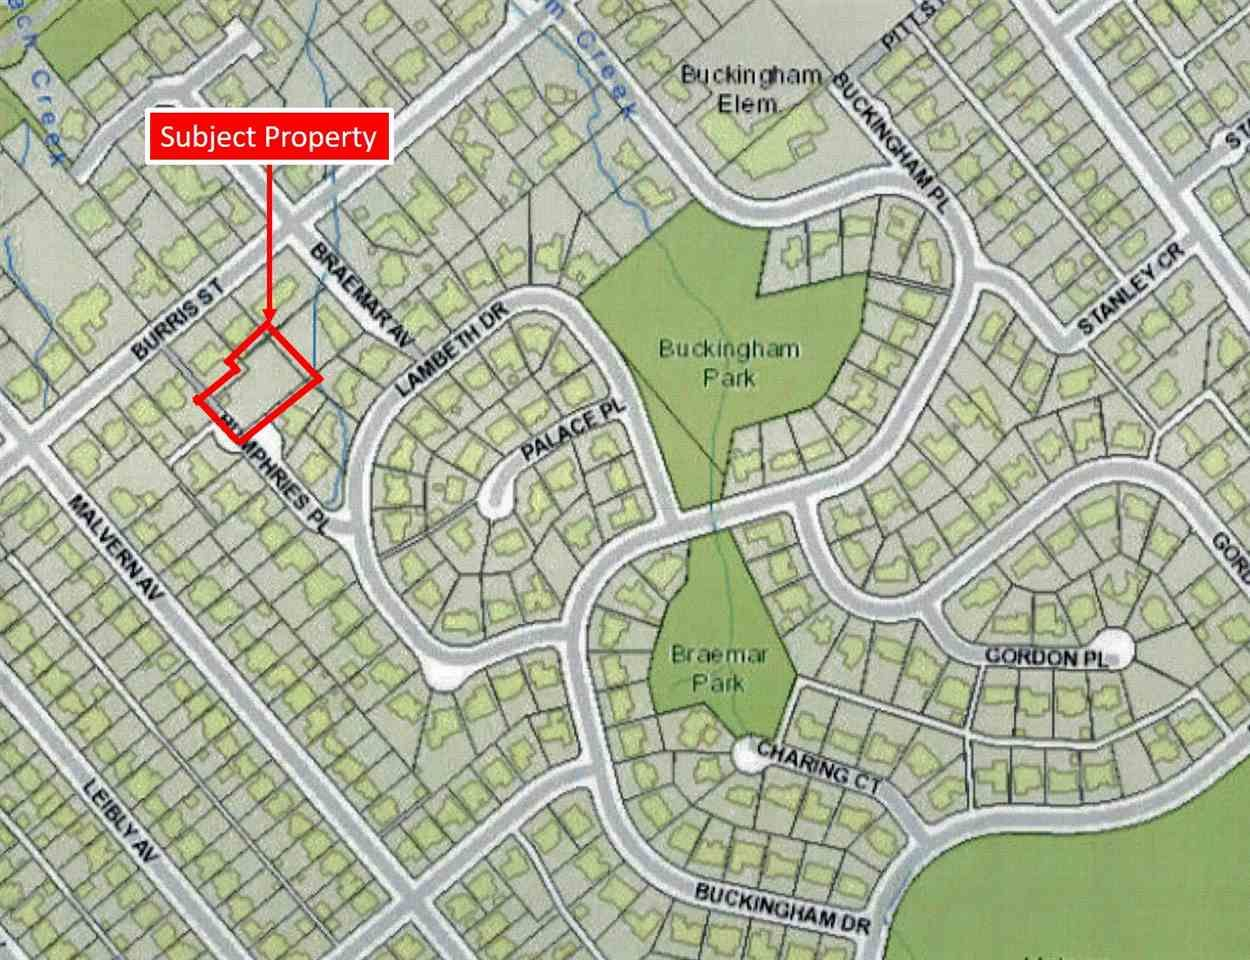 """Main Photo: 6000 HUMPHRIES Place in Burnaby: Buckingham Heights Land for sale in """"Buckingham Heights"""" (Burnaby South)  : MLS®# R2445218"""